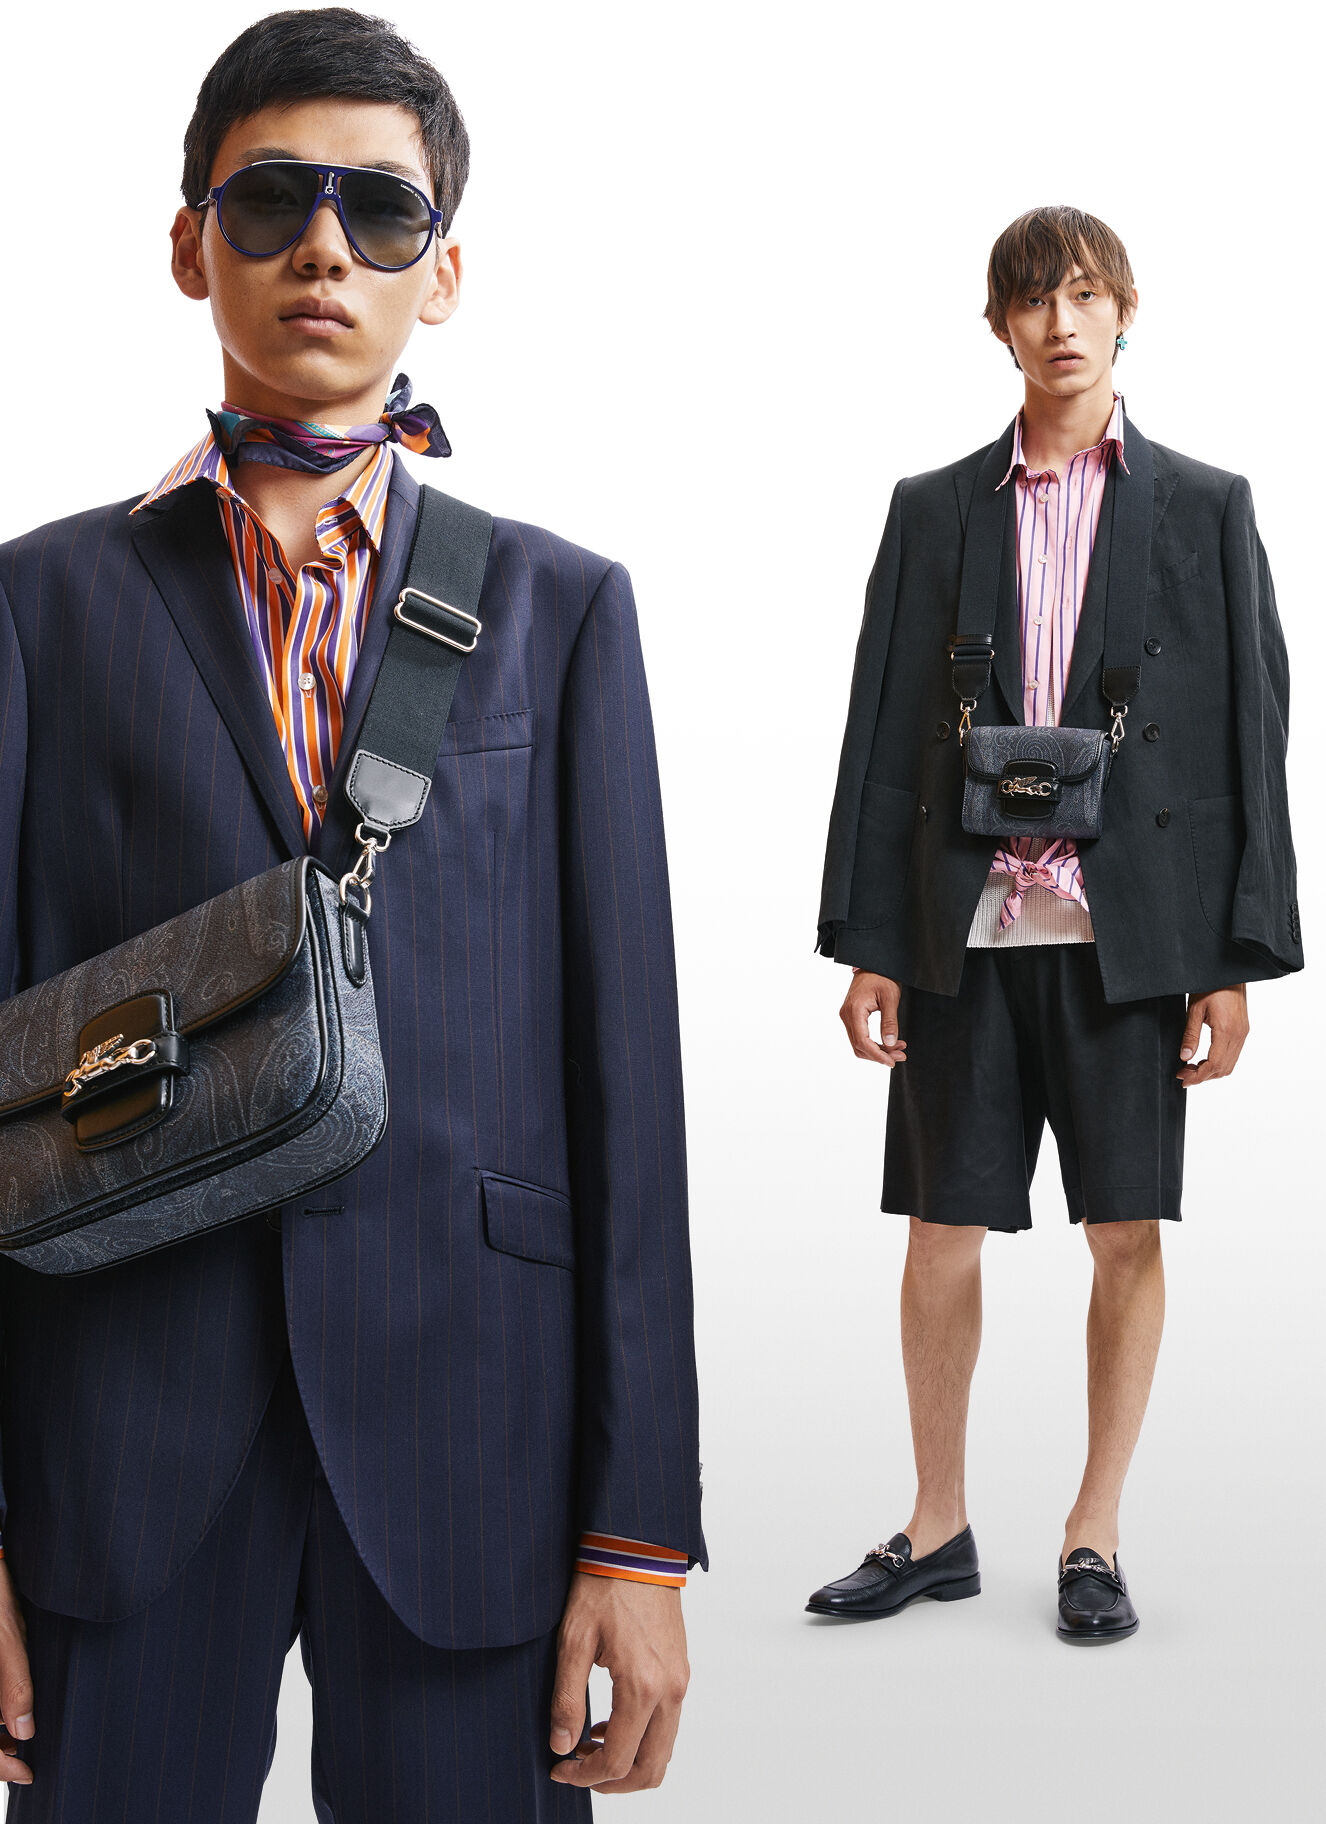 ETRO_SS21_Unisex_Catalogue_66